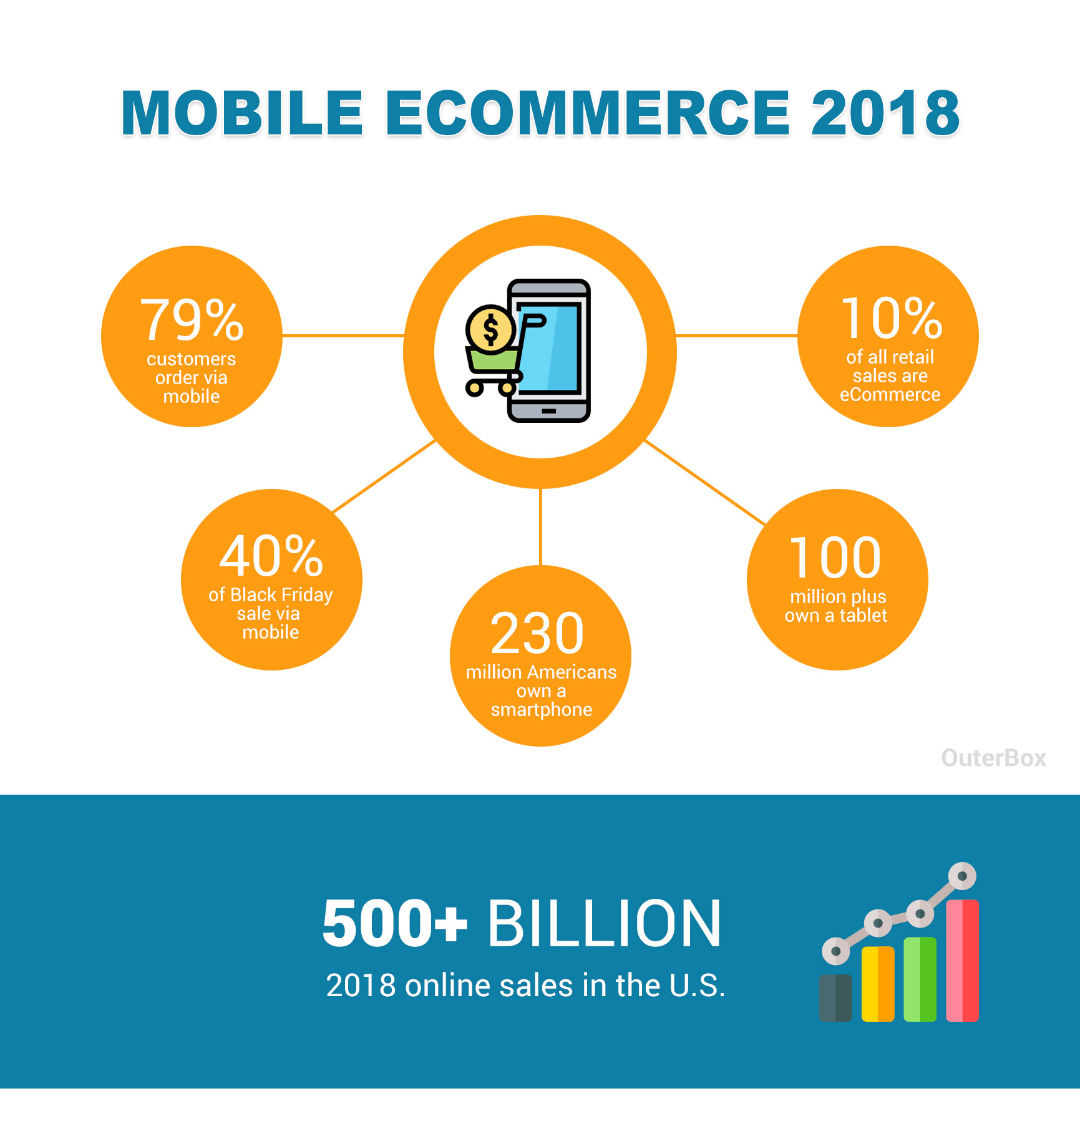 mobile ecommerce stats and trends